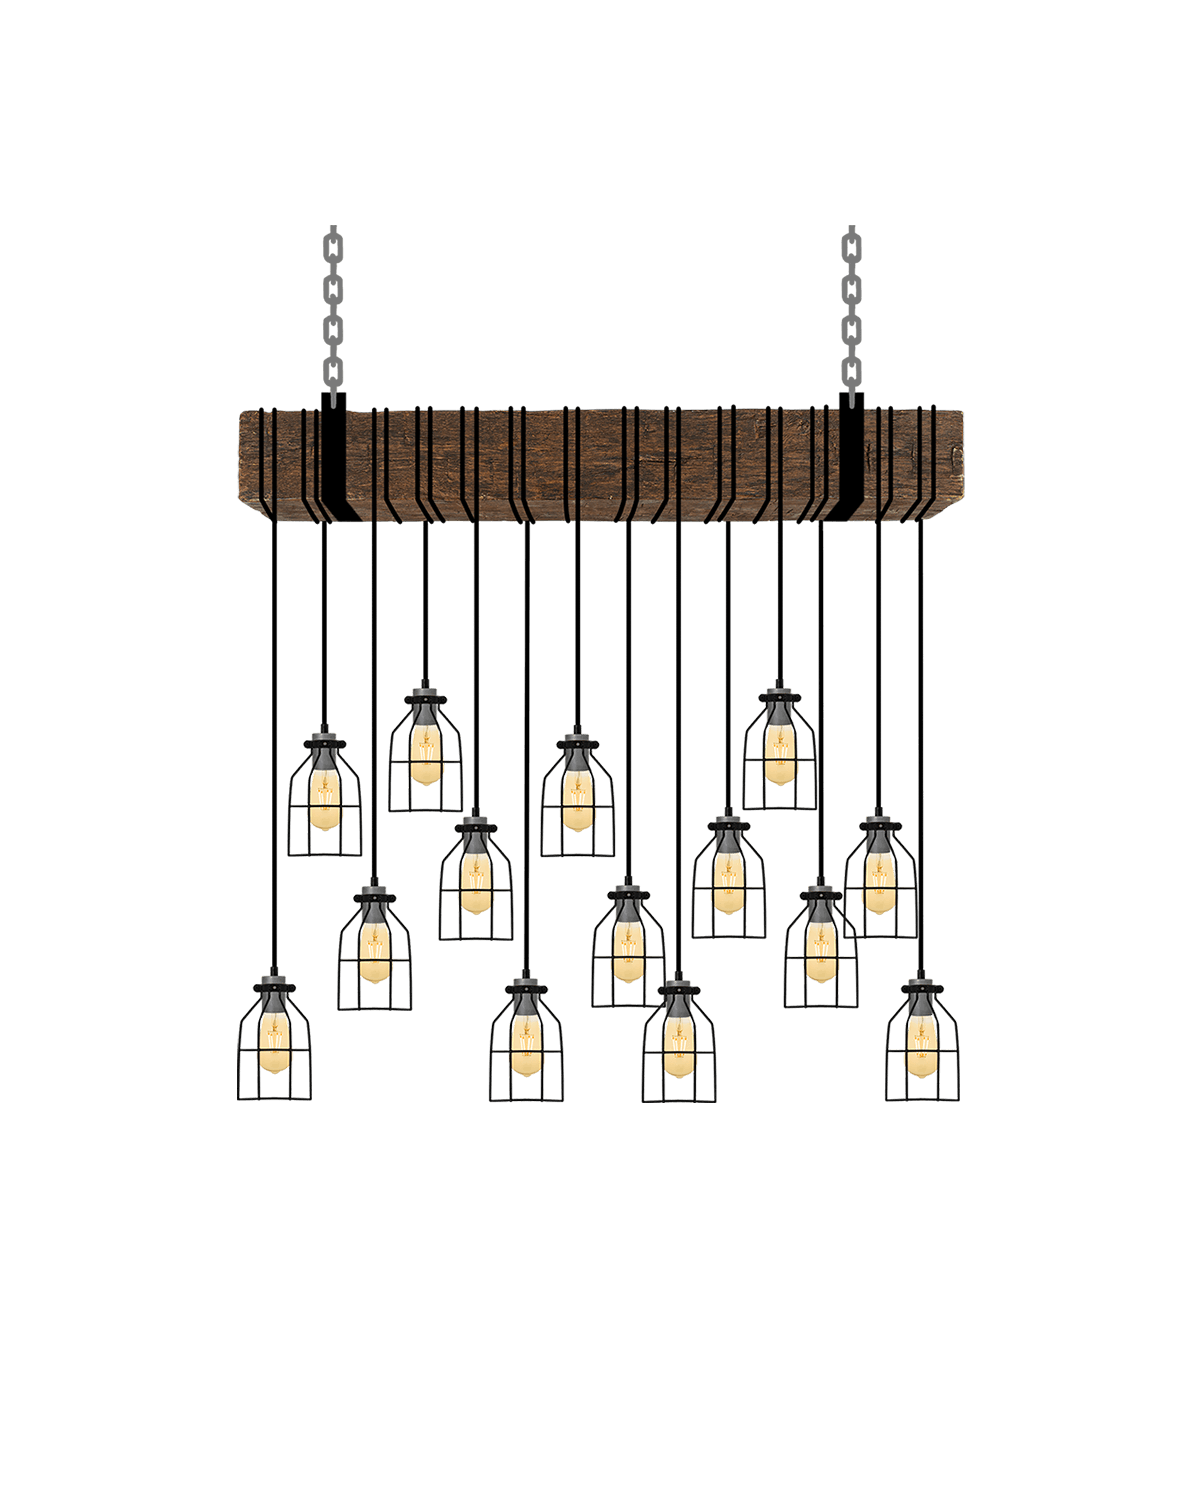 Faux Beam 14 Pendant Wrap: Steel with Black Cages Hangout Lighting 4' Beam